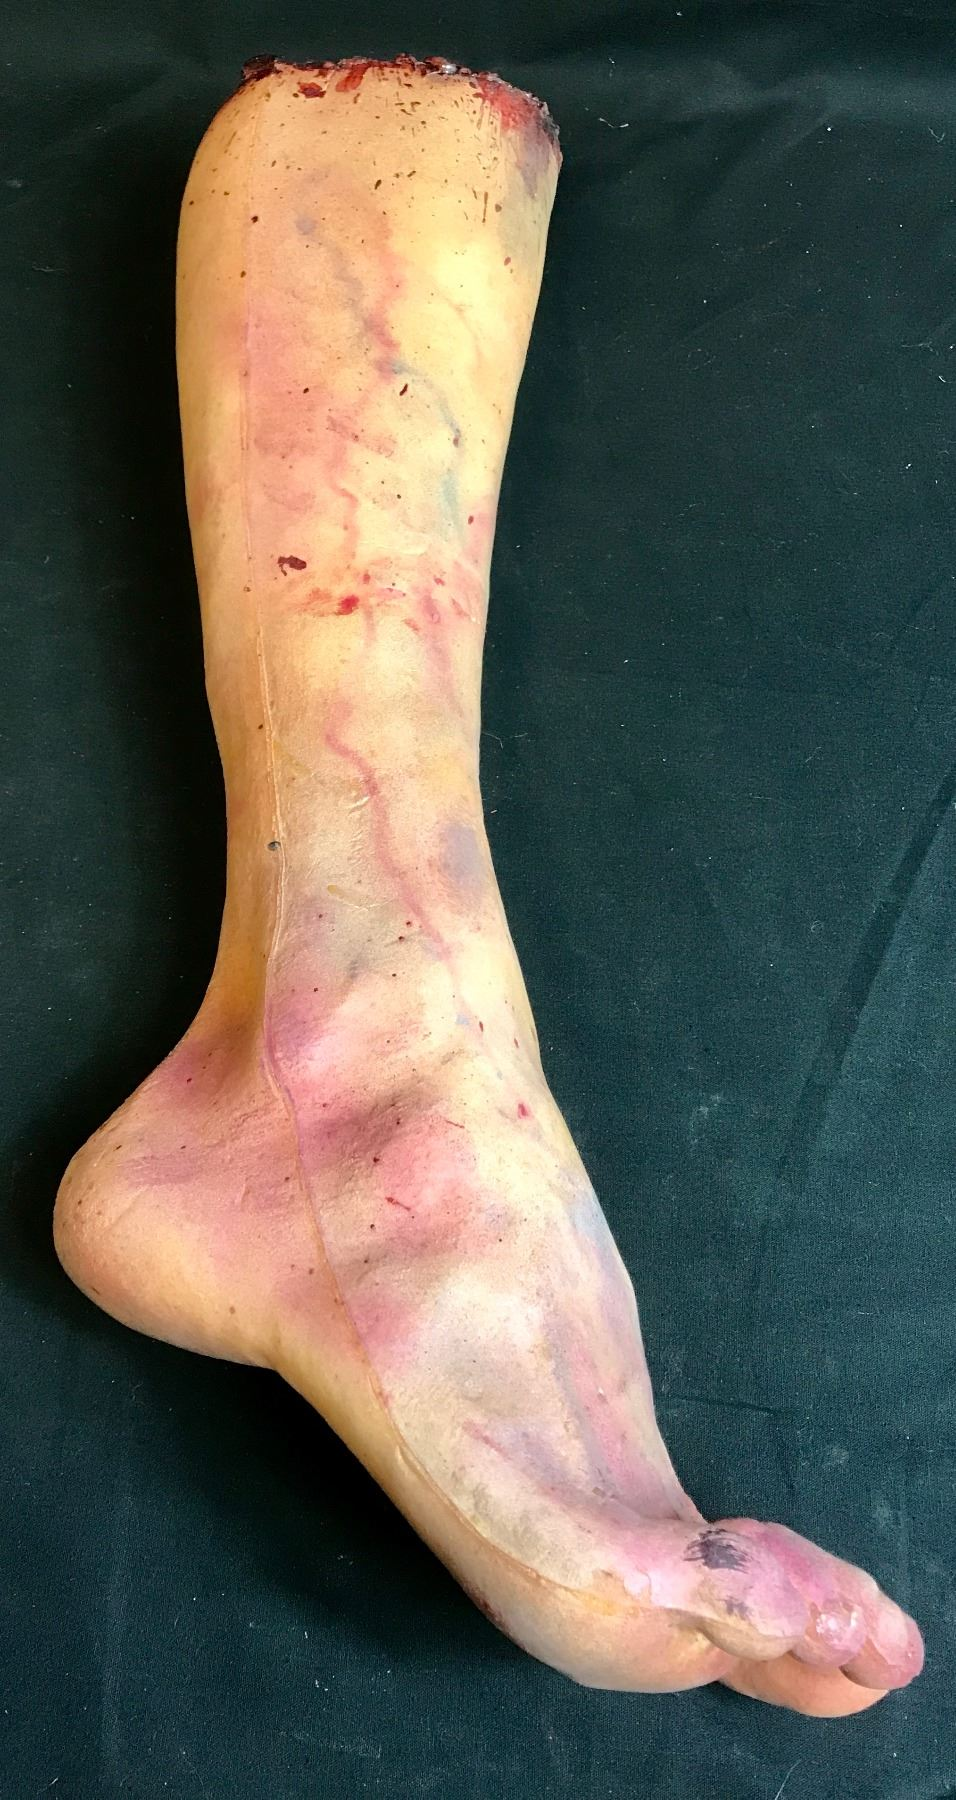 Stranger Things 2016 Special Effects Foot